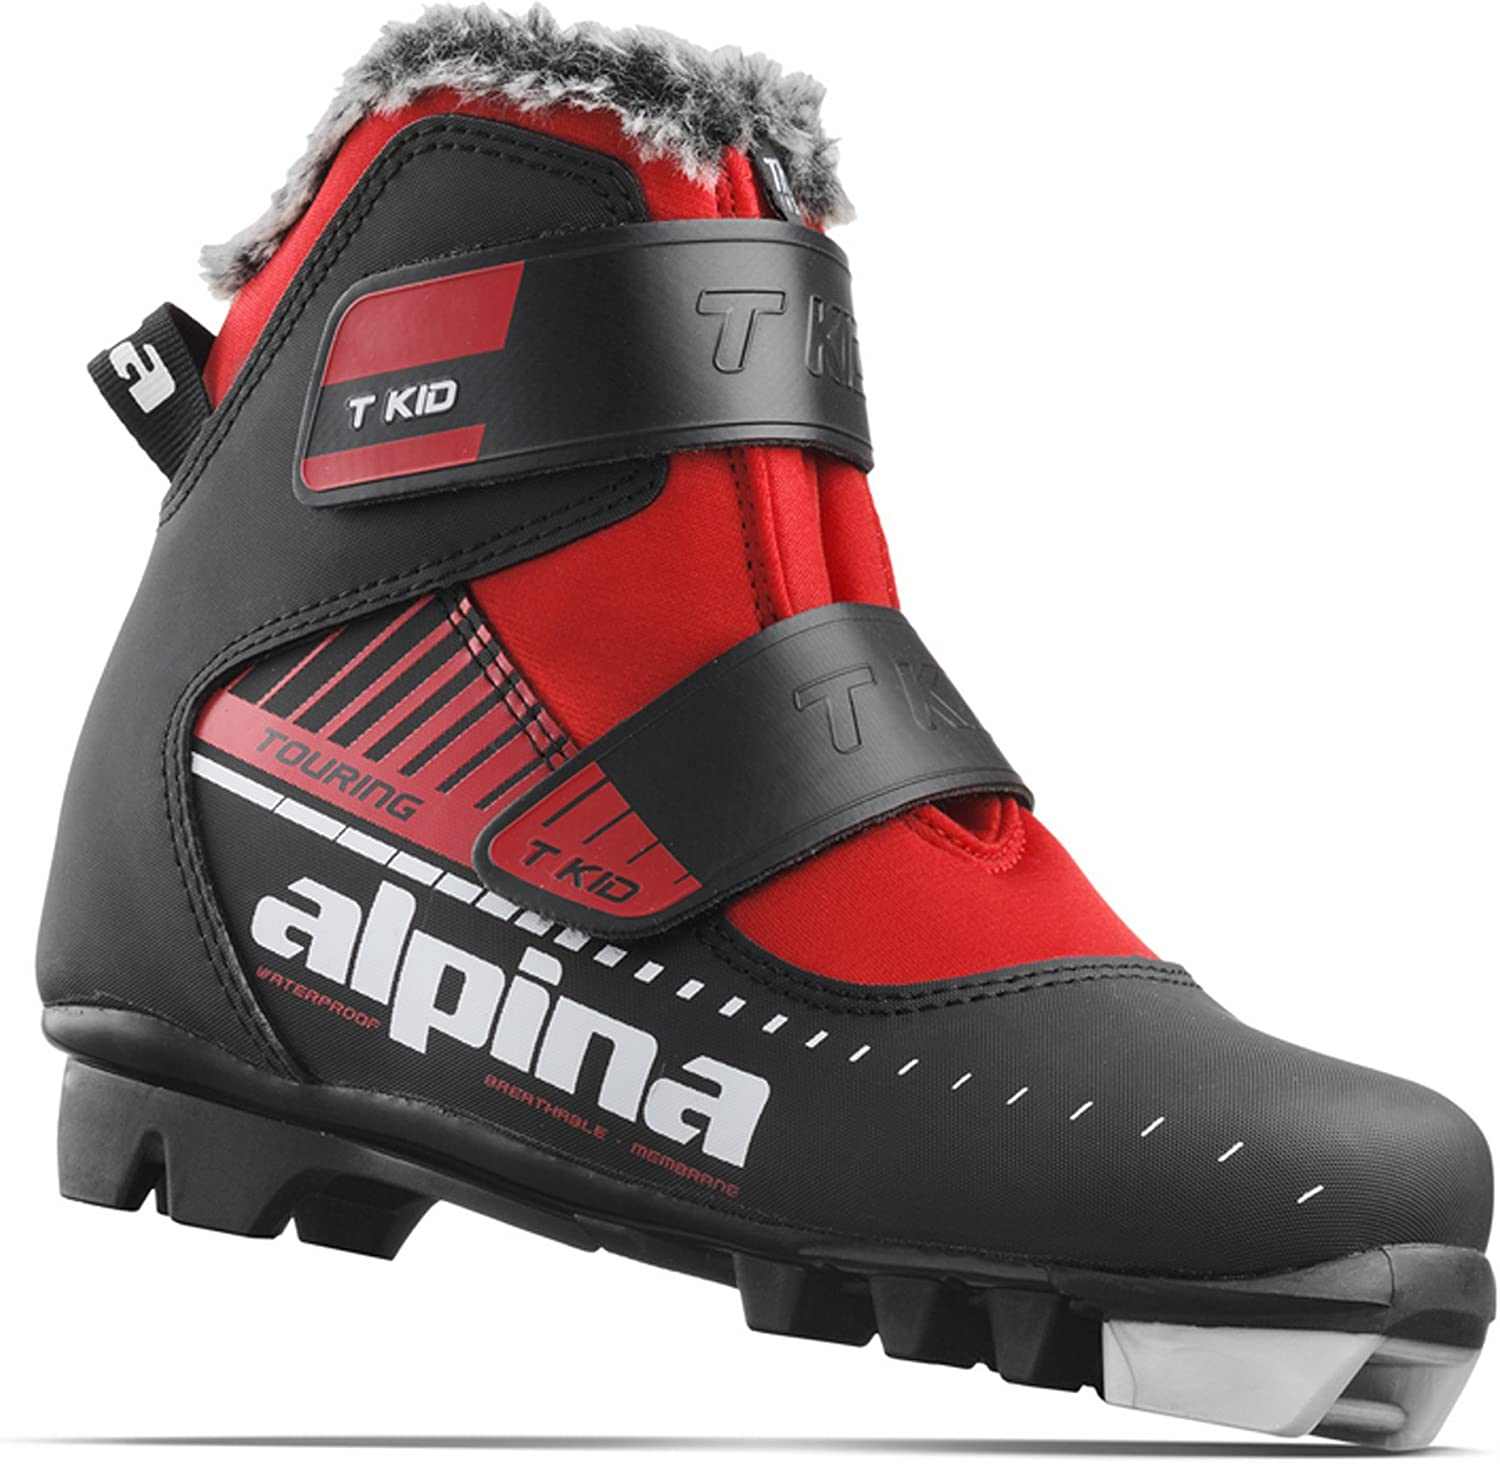 Alpina Sports Youth T-Kid Touring Cross Country Nordic Ski Boots With Dual Strap Closure Euro 26 Black//Red